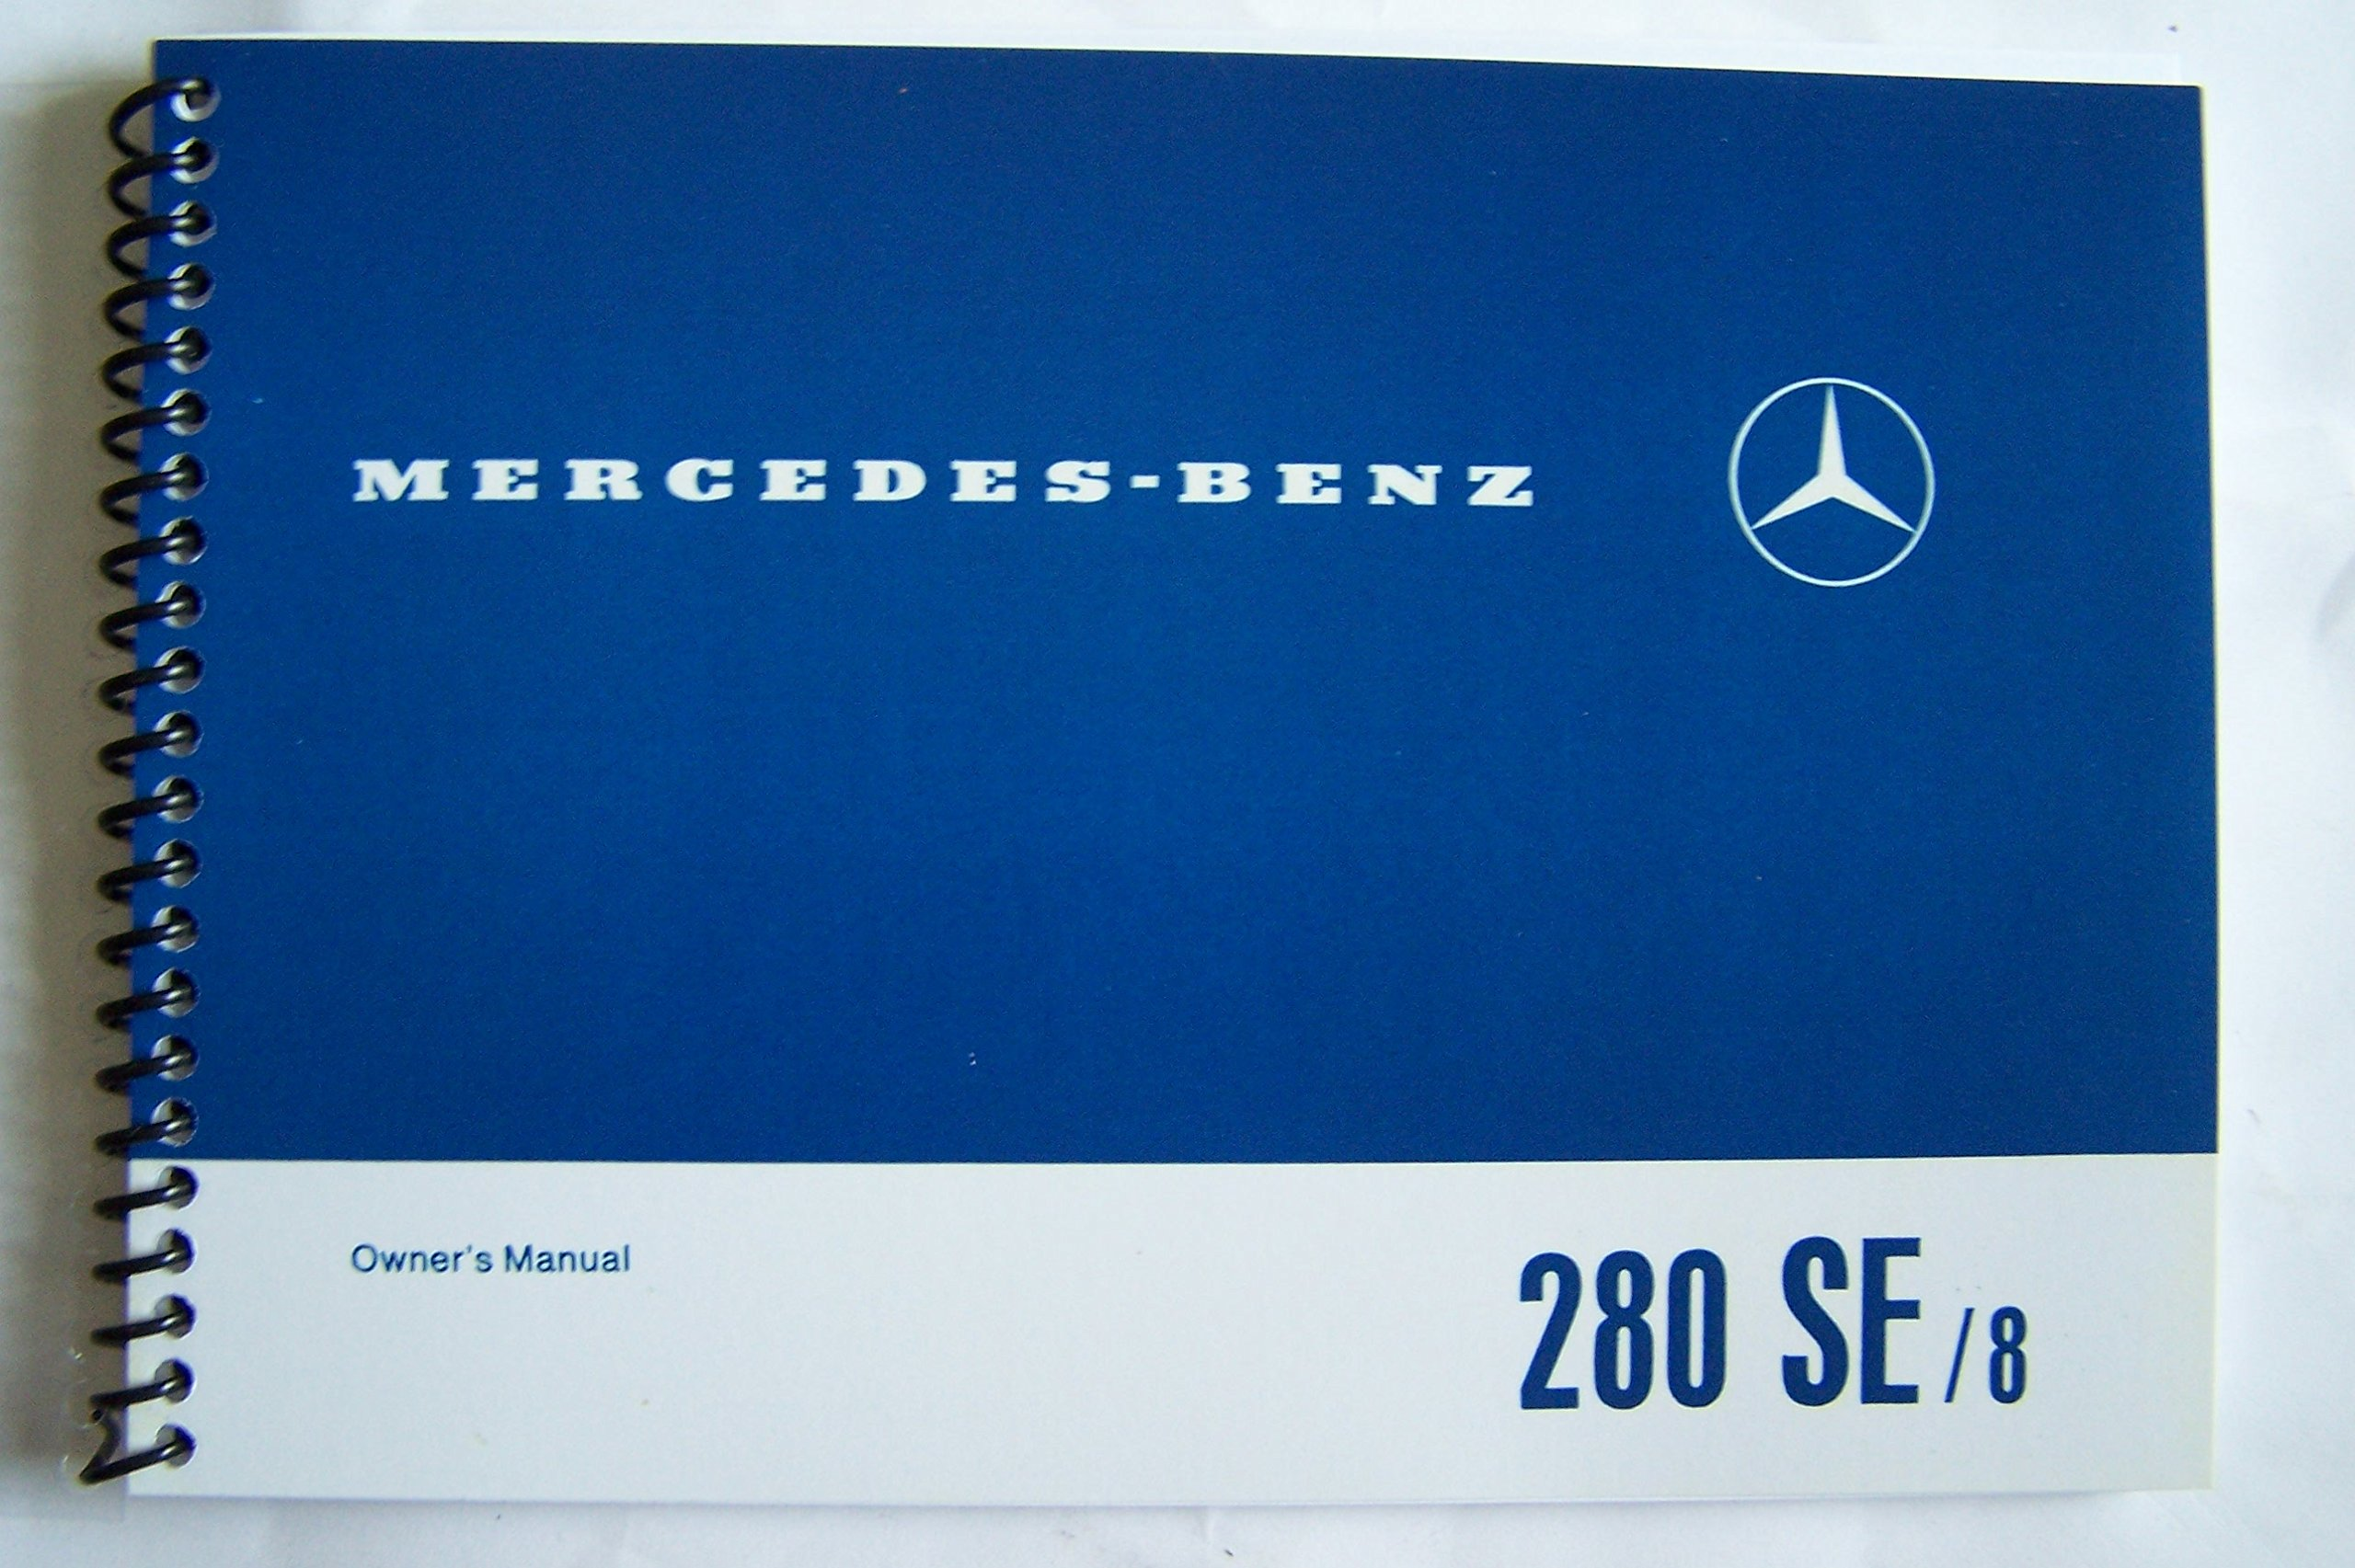 1970 mercedes benz 280 se sedan owners manual w 108 new factory reprint  spiral-bound